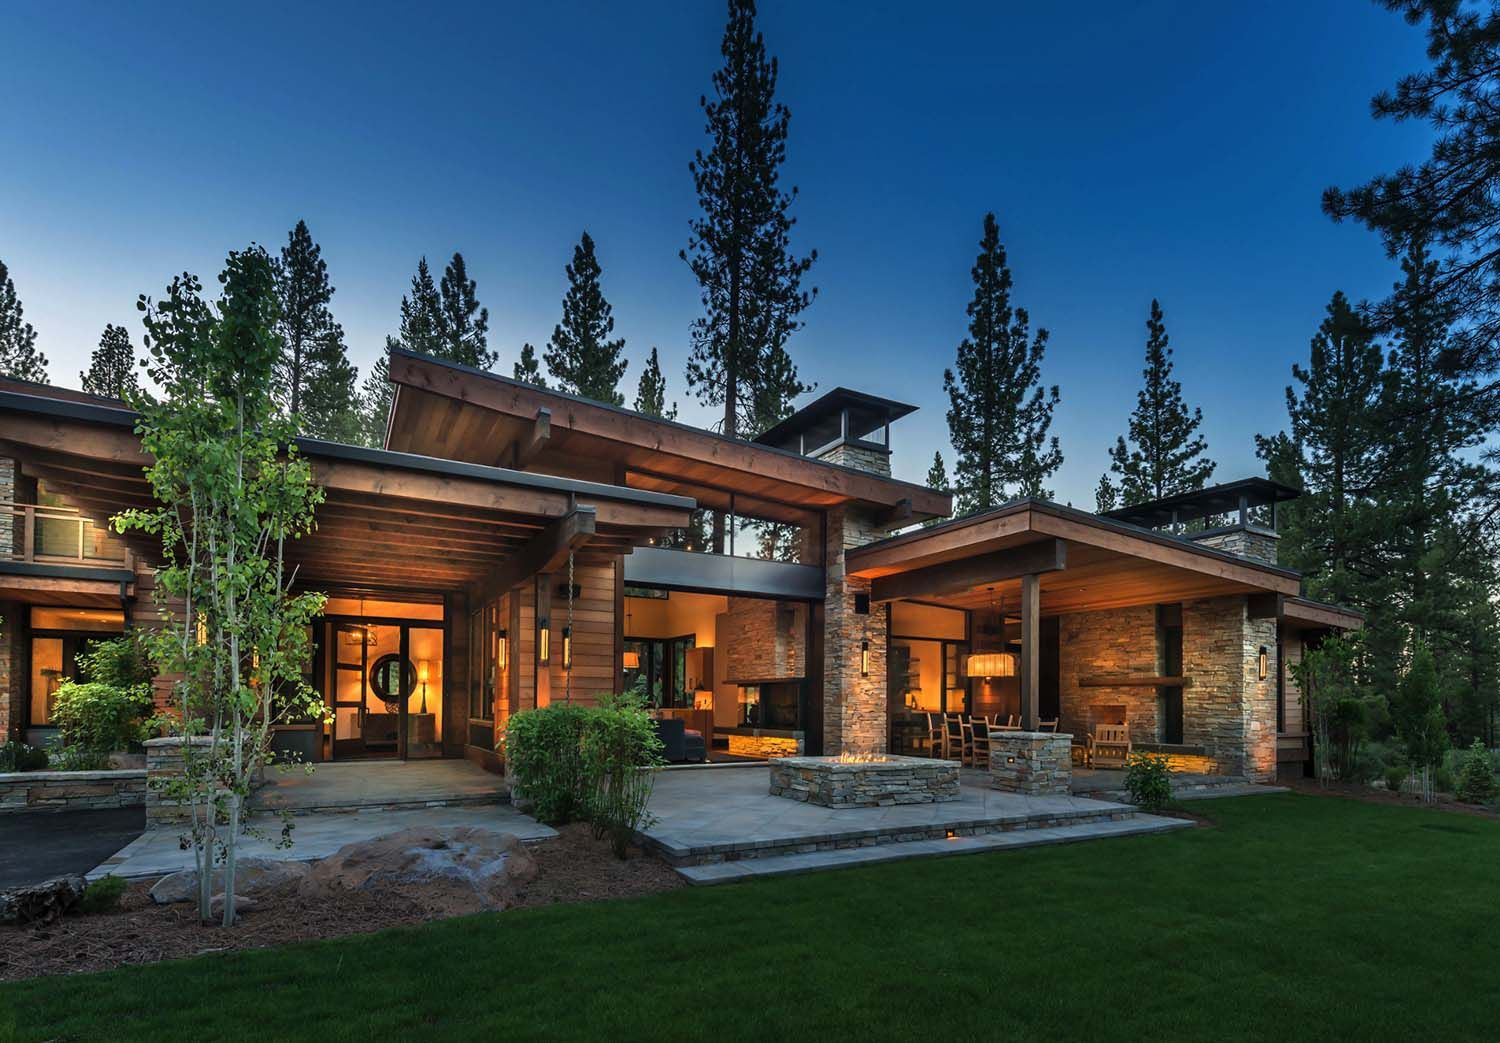 Mountain Modern Home In Martis Camp With Indoor-outdoor